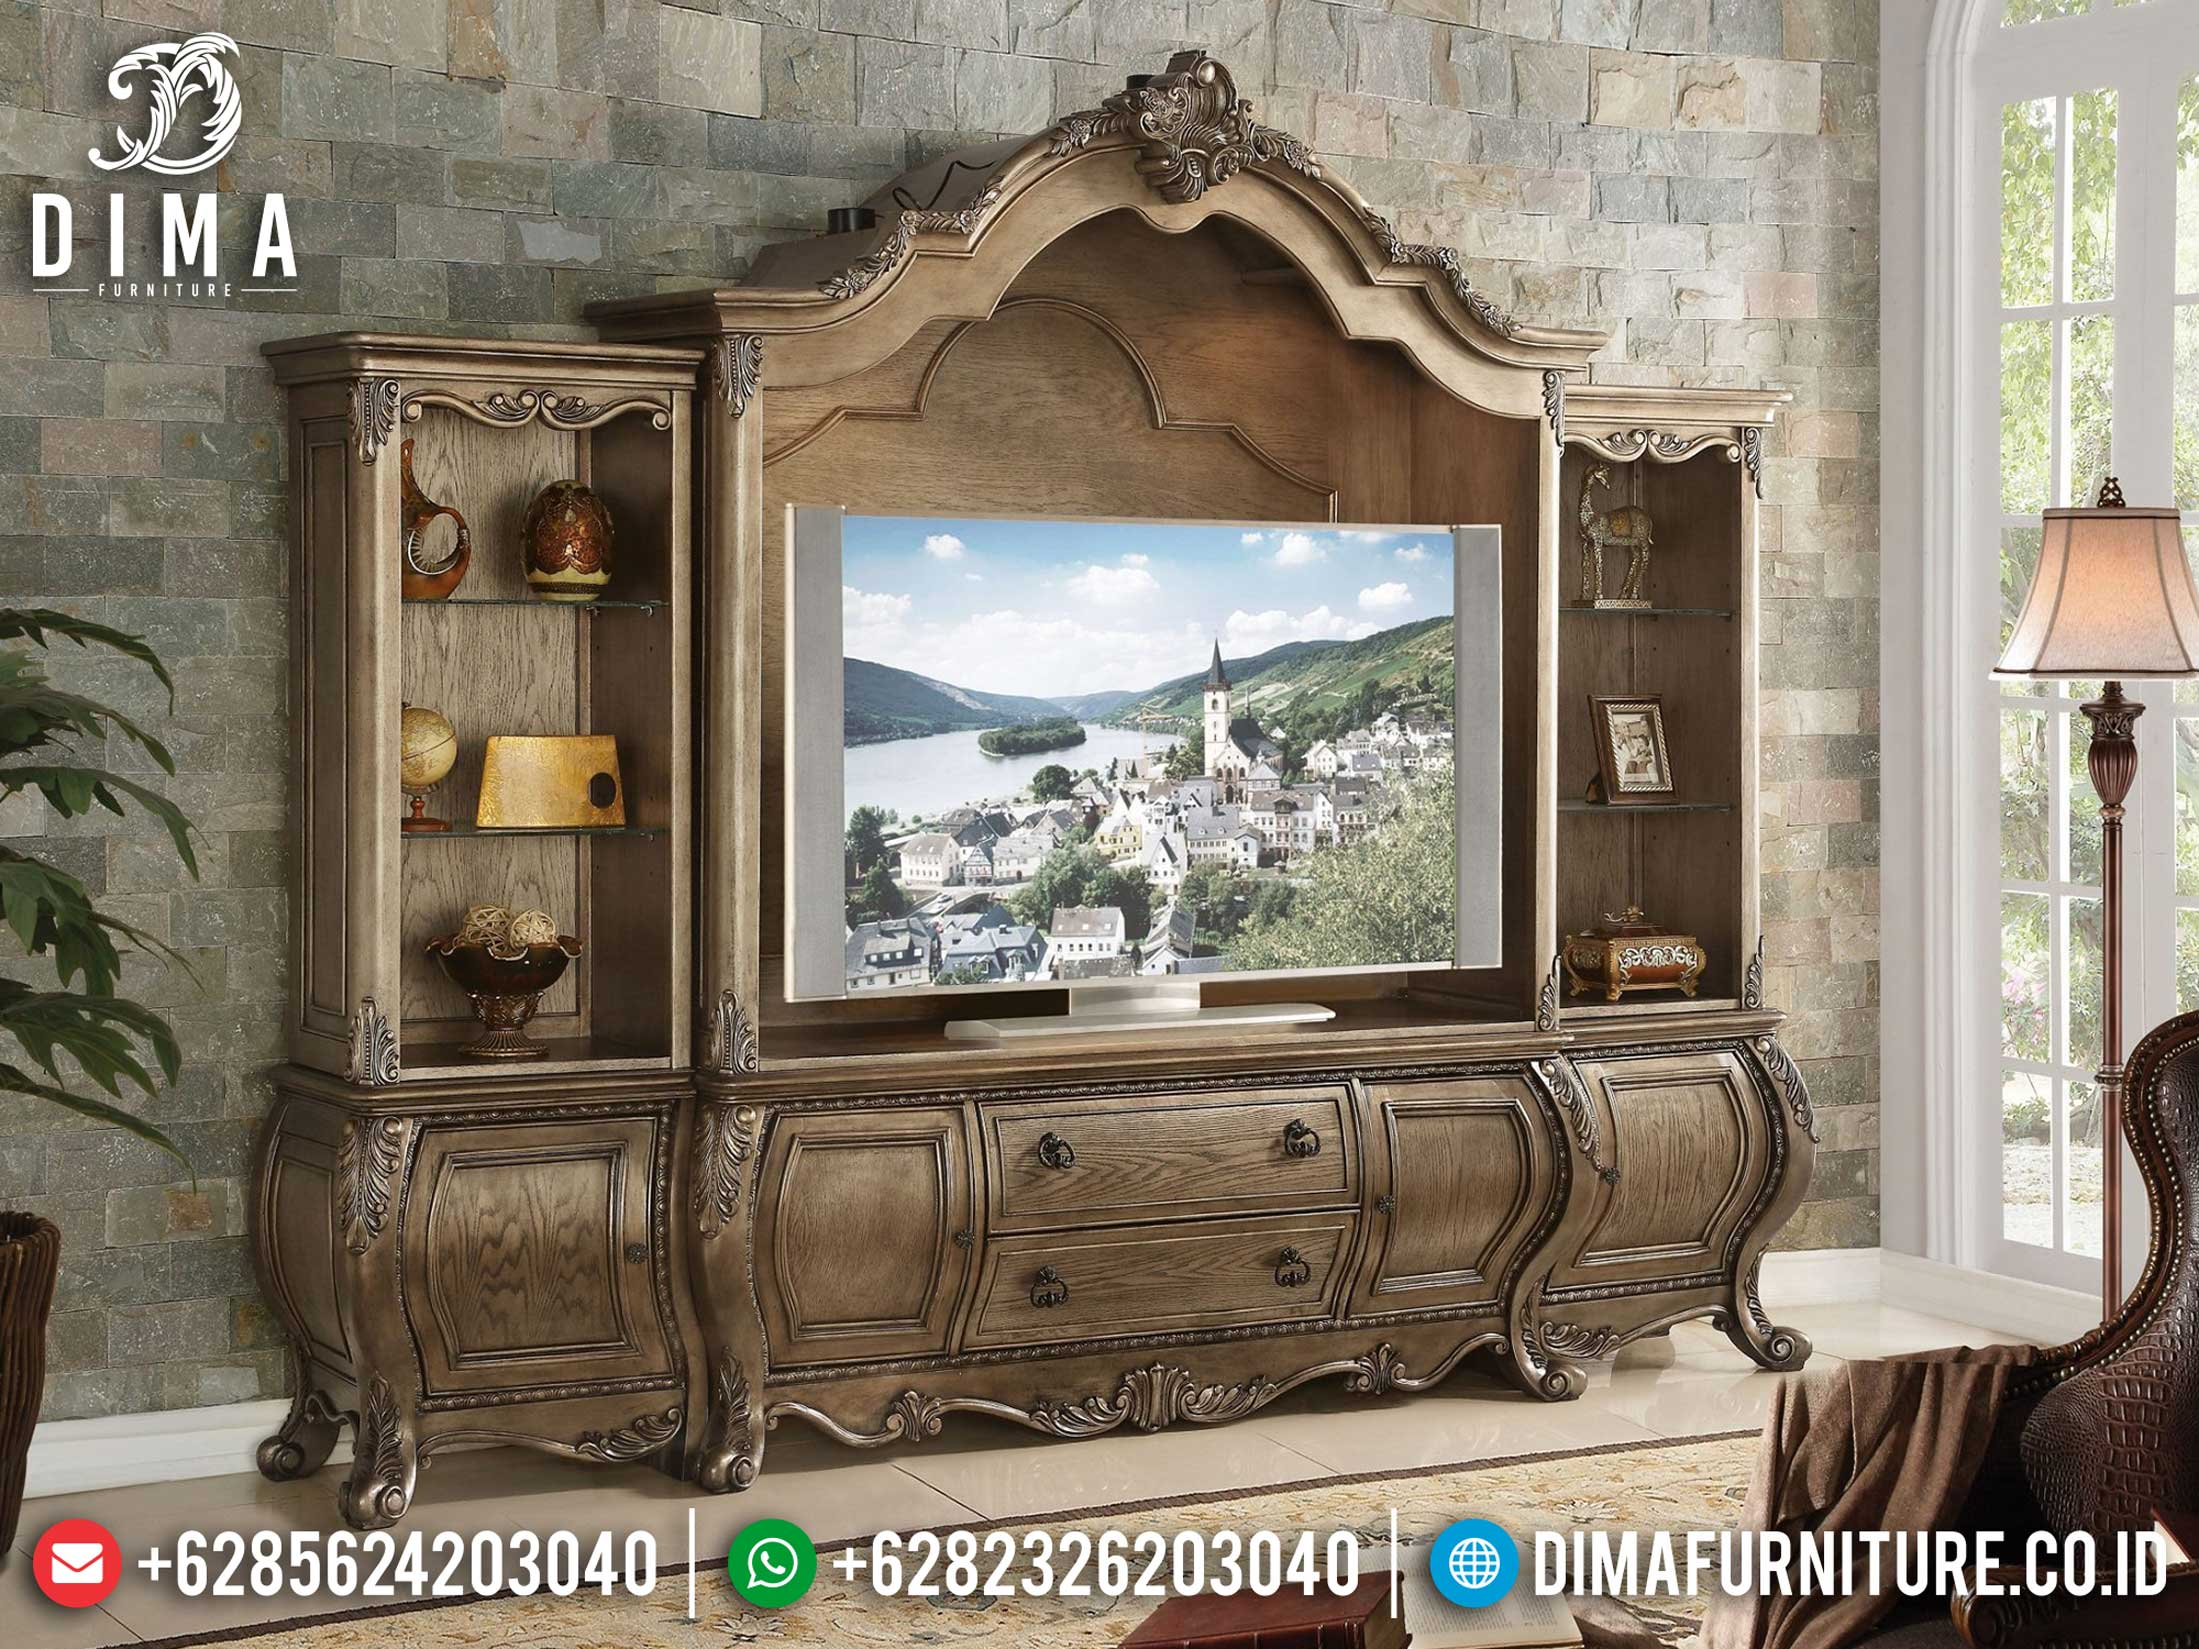 New Bufet TV Ukiran Luxury Design Living Room Classic Elegant Furniture Jepara BT-0879